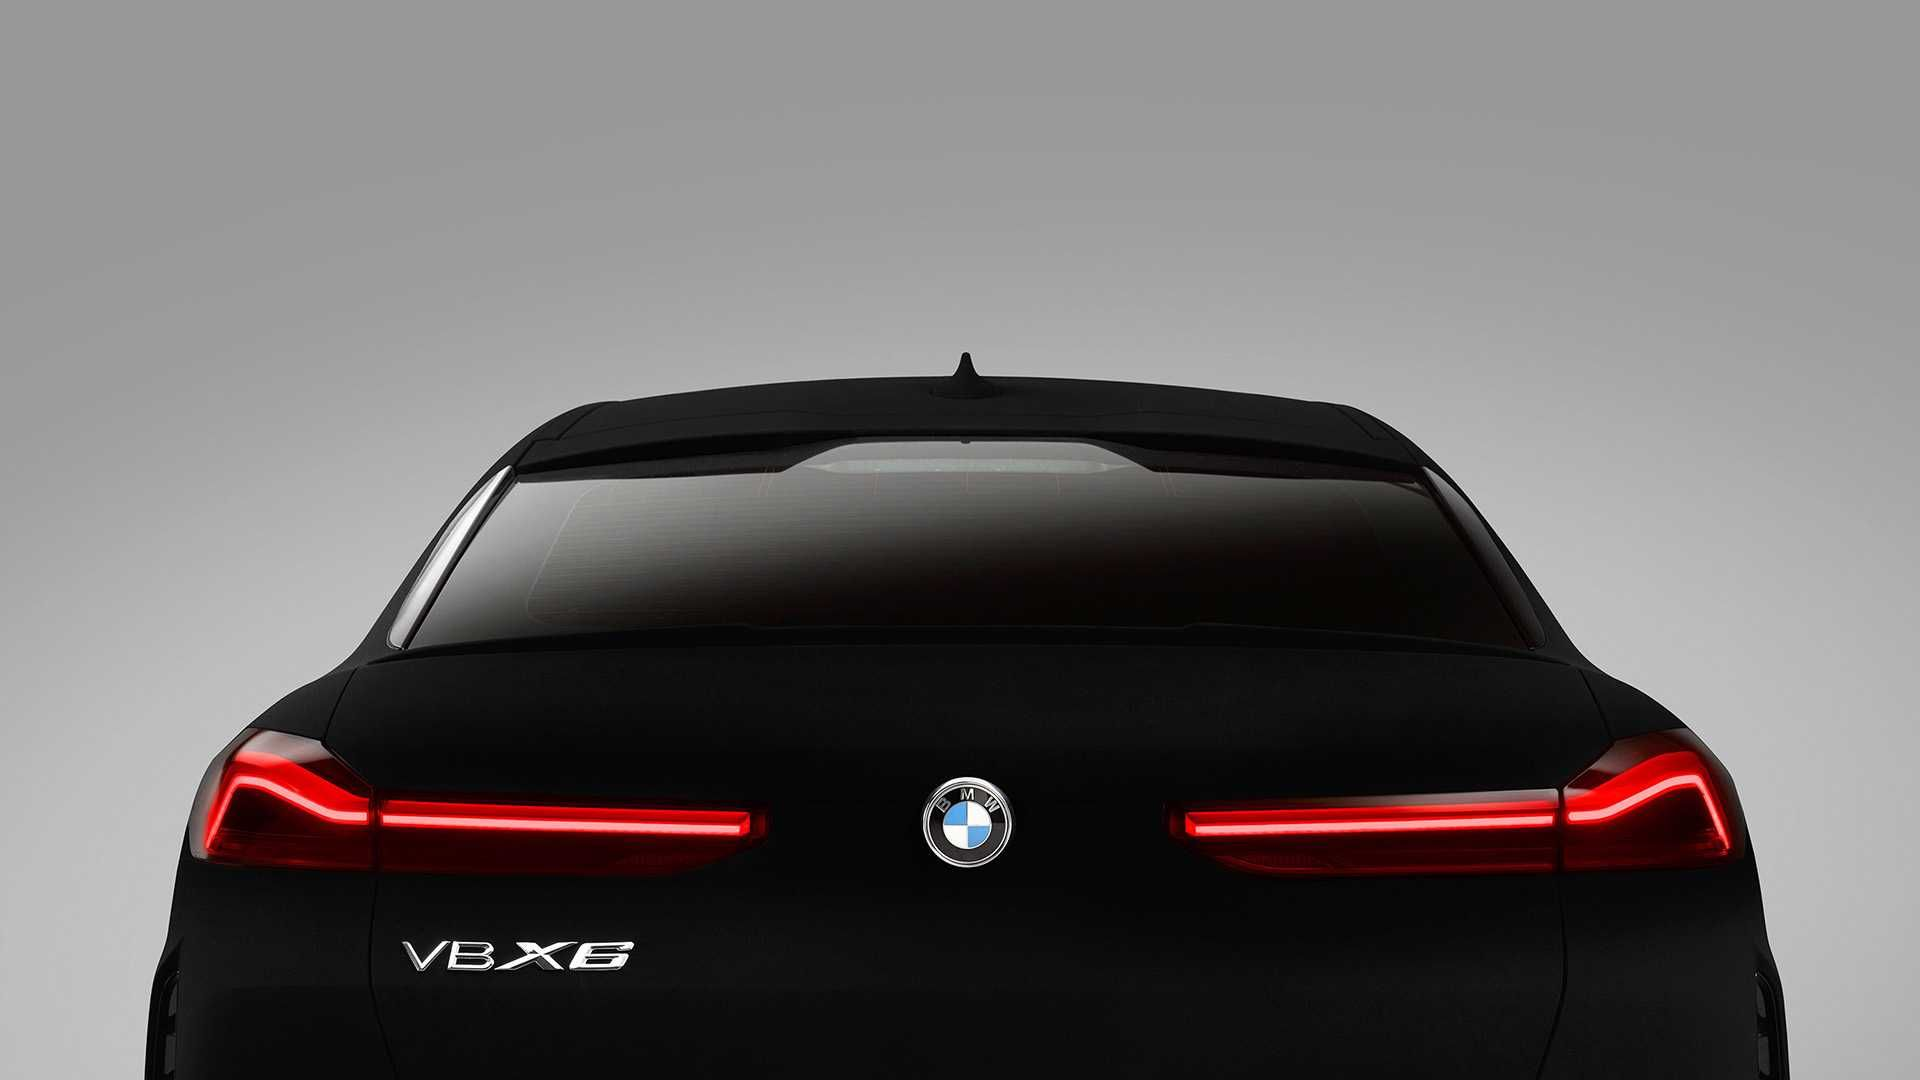 Bmw To Reveal The Blackest Car In The World Tatler Thailand